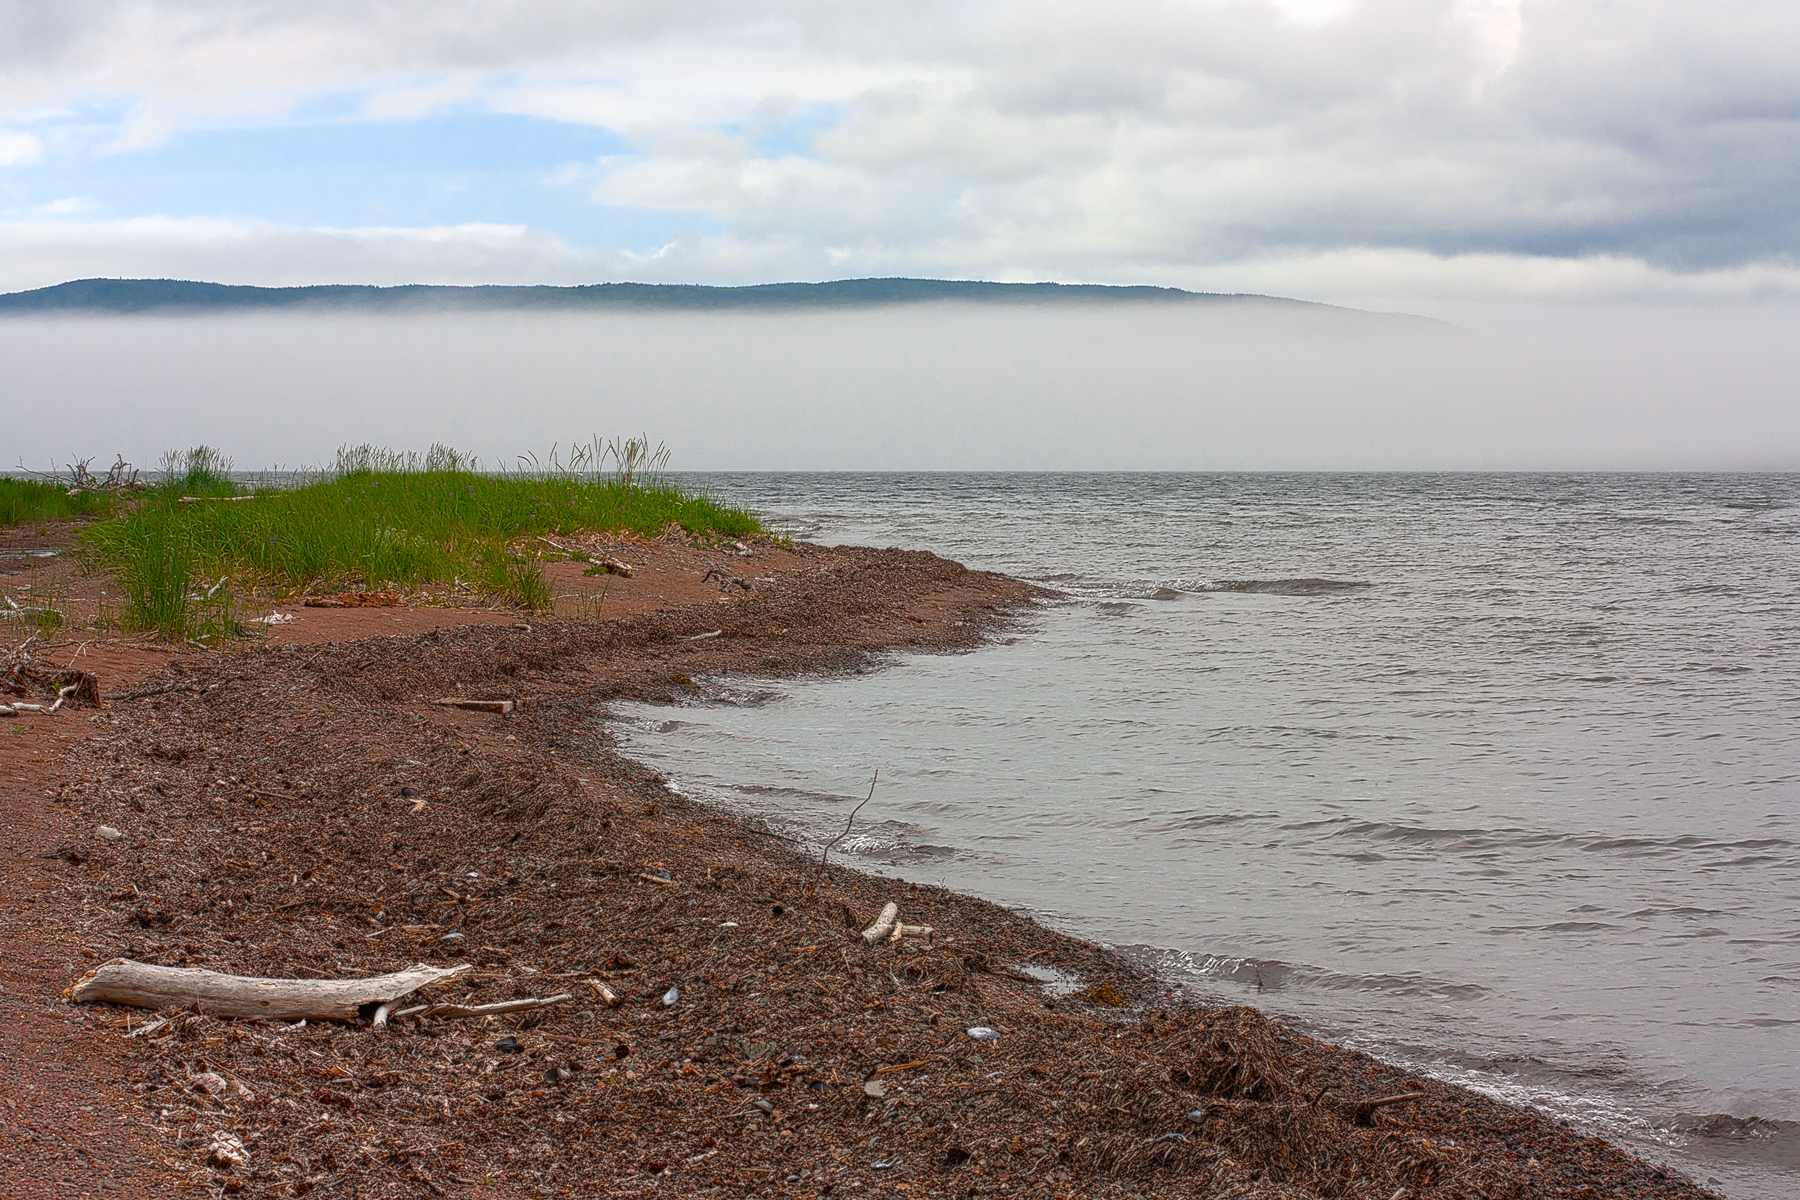 Misty Cabot Trail Scenery - HDR, Angle, Outside, Range, Picture, HQ Photo